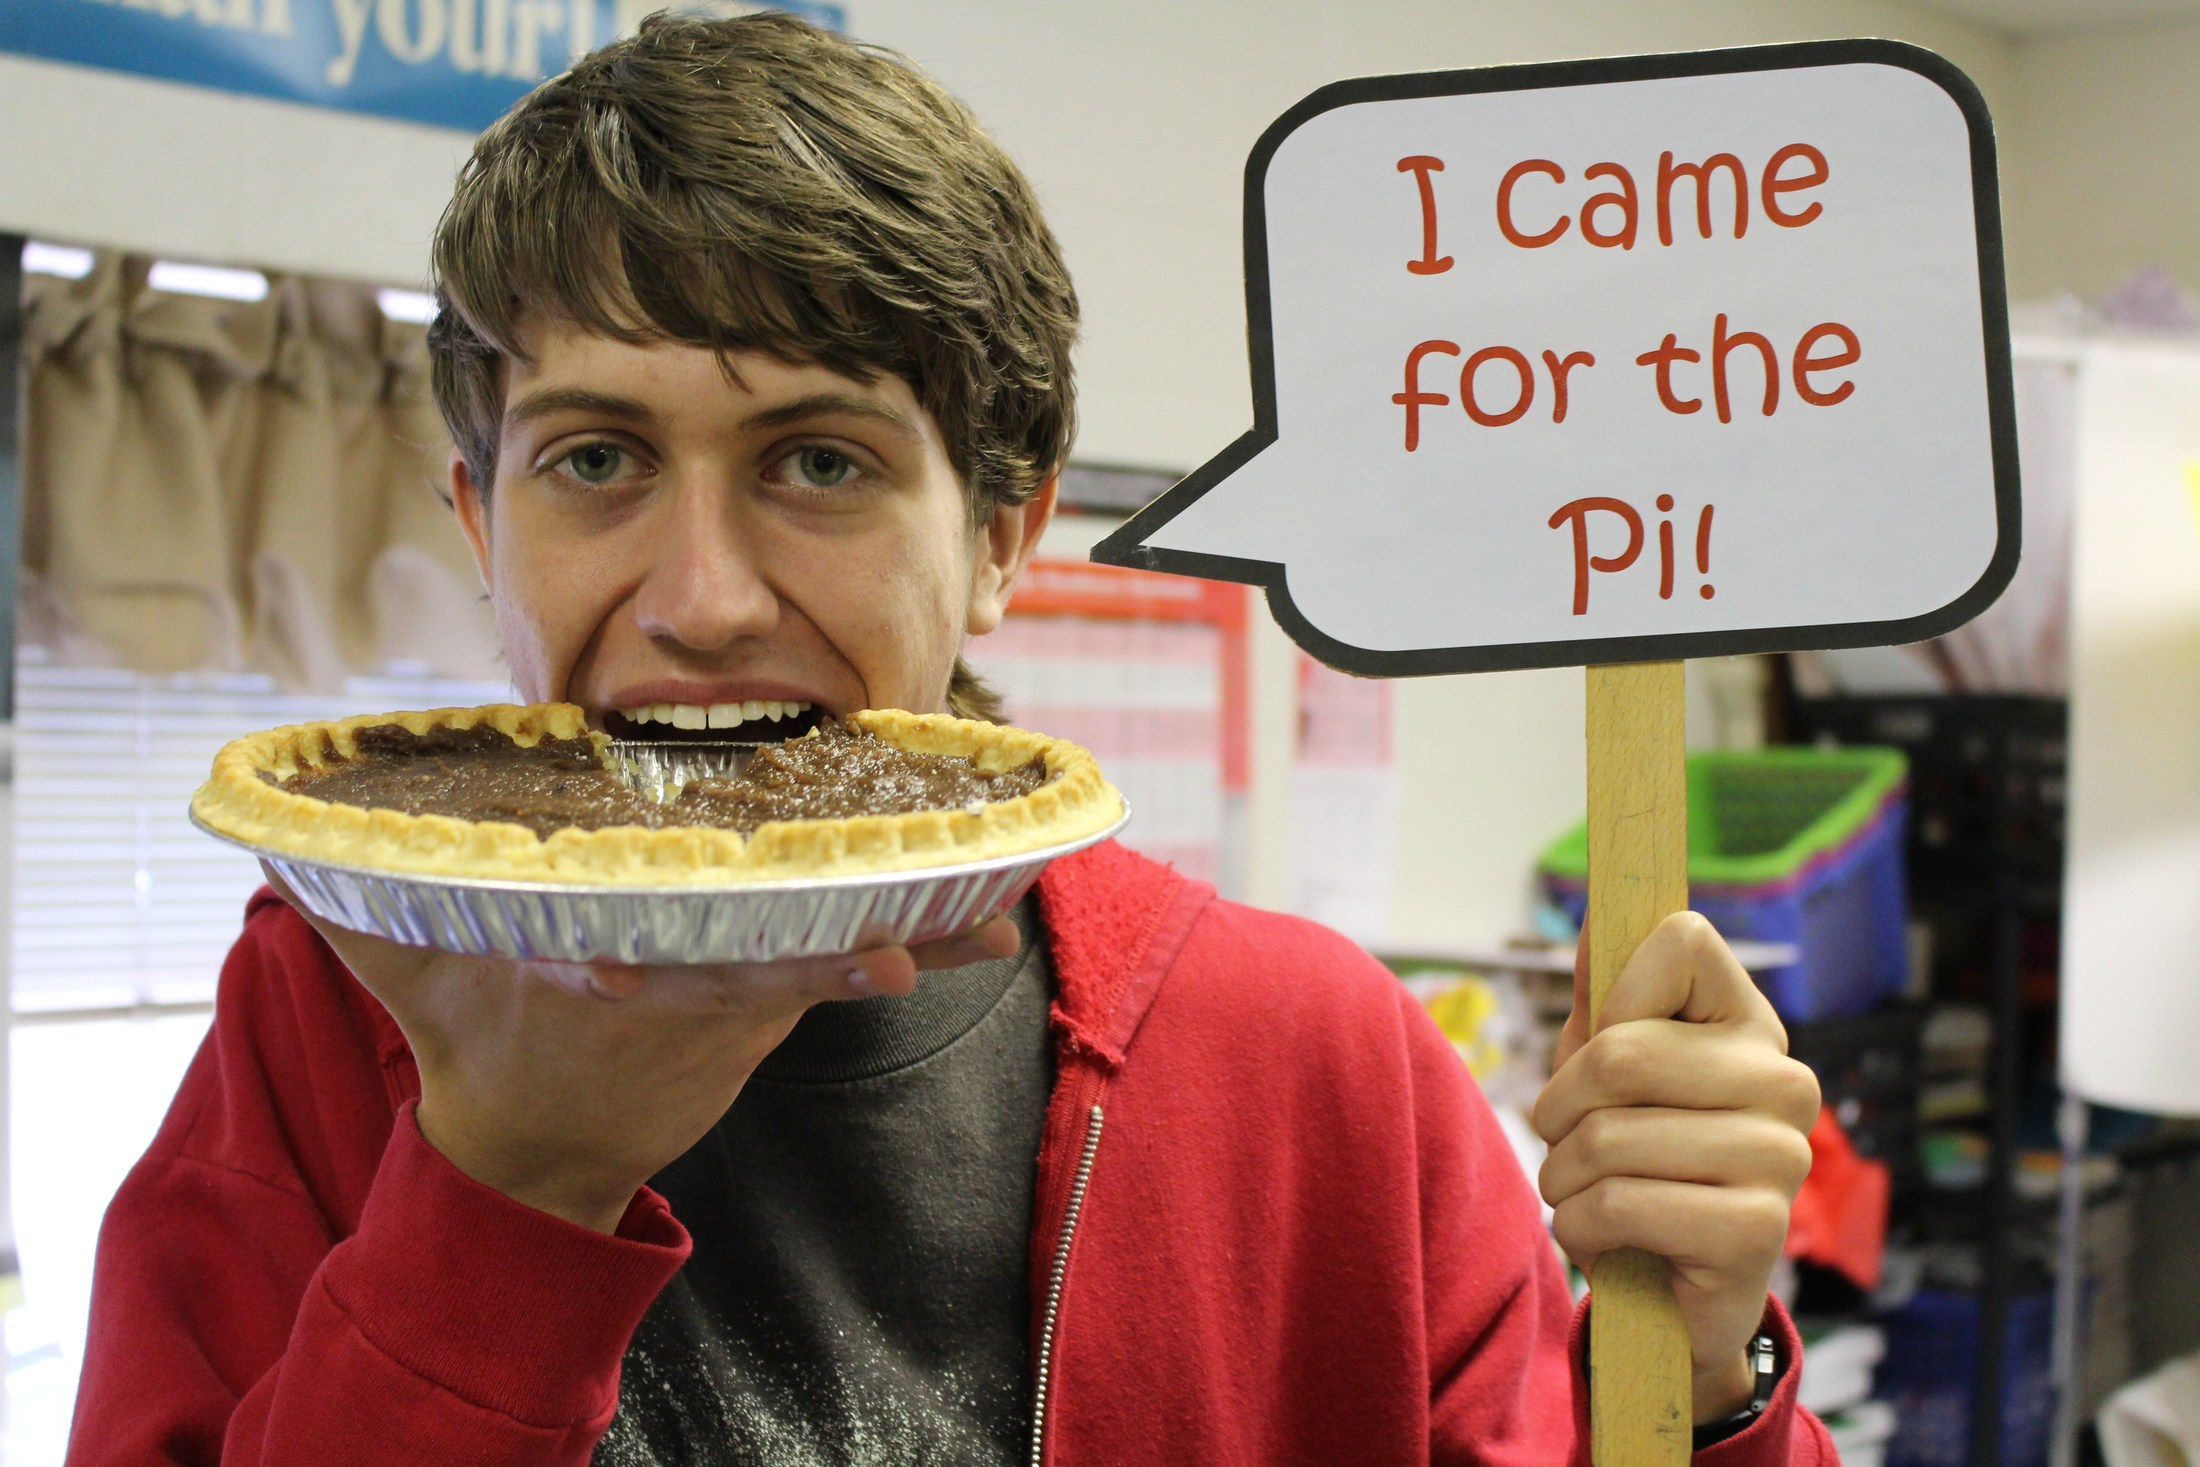 Pi day eating and photo booth fun